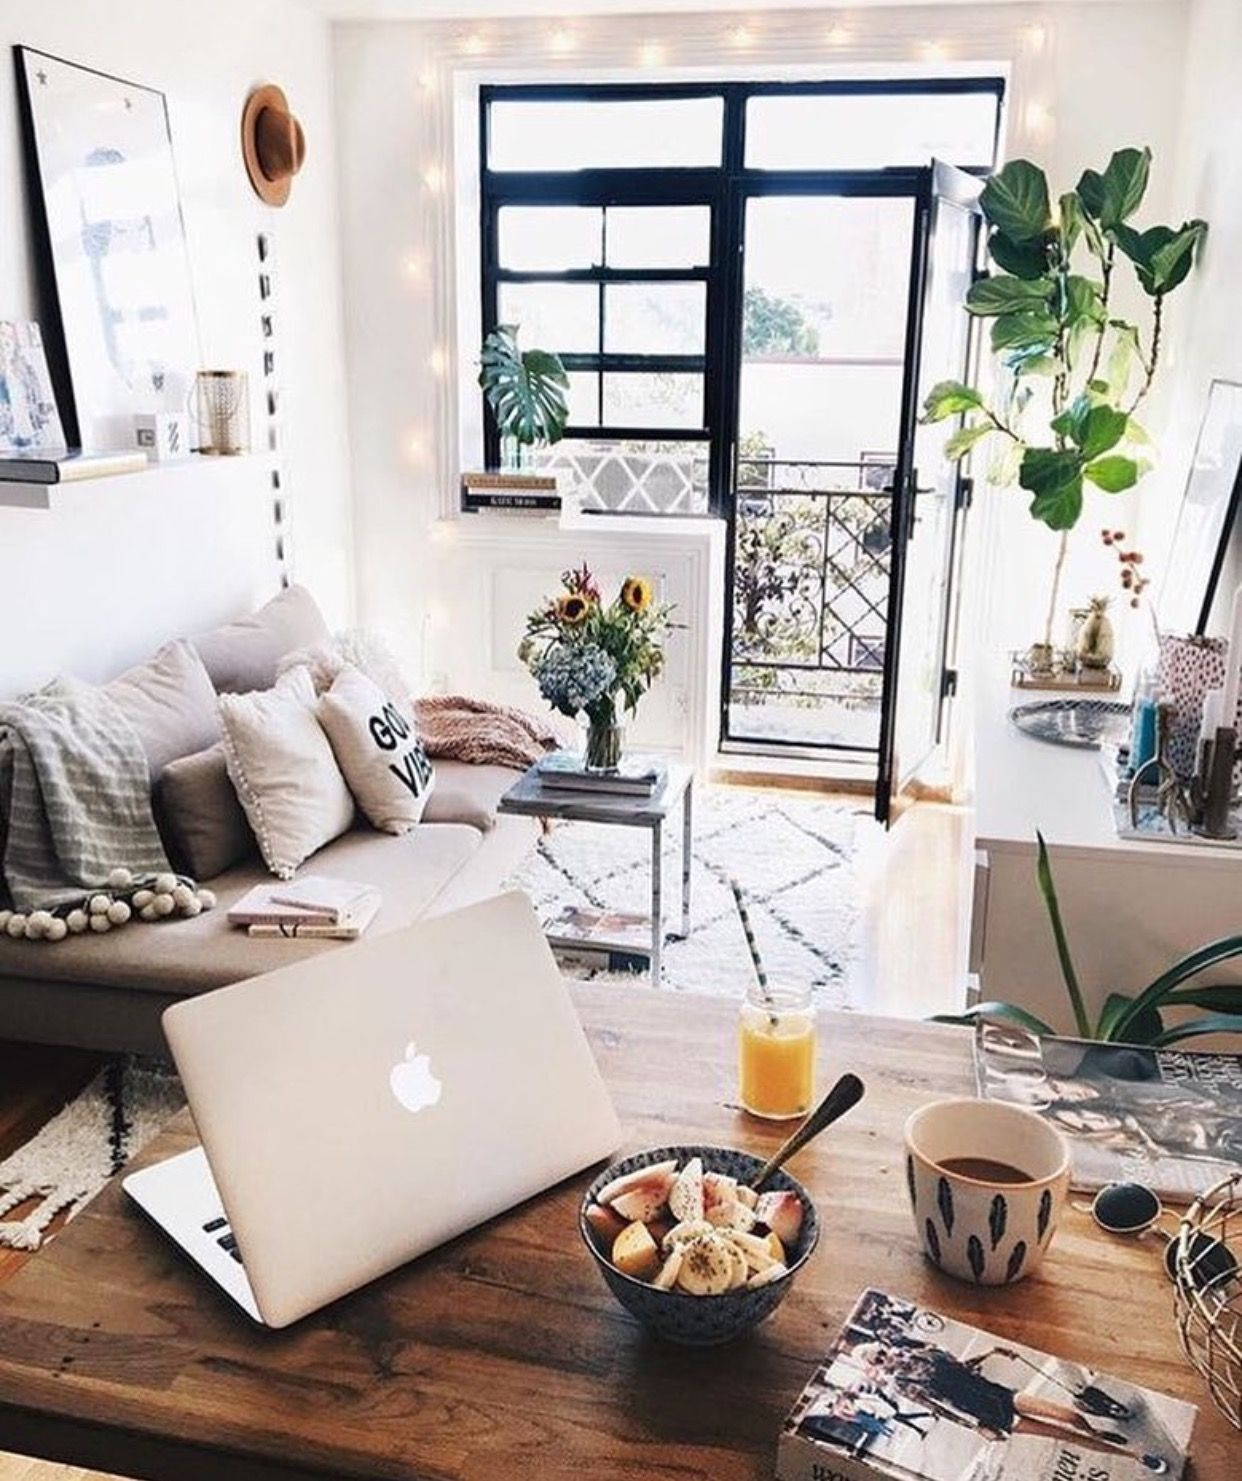 Pinterest rebekahgaskin7 pinterest rebekahgaskin7 small cozy apartment